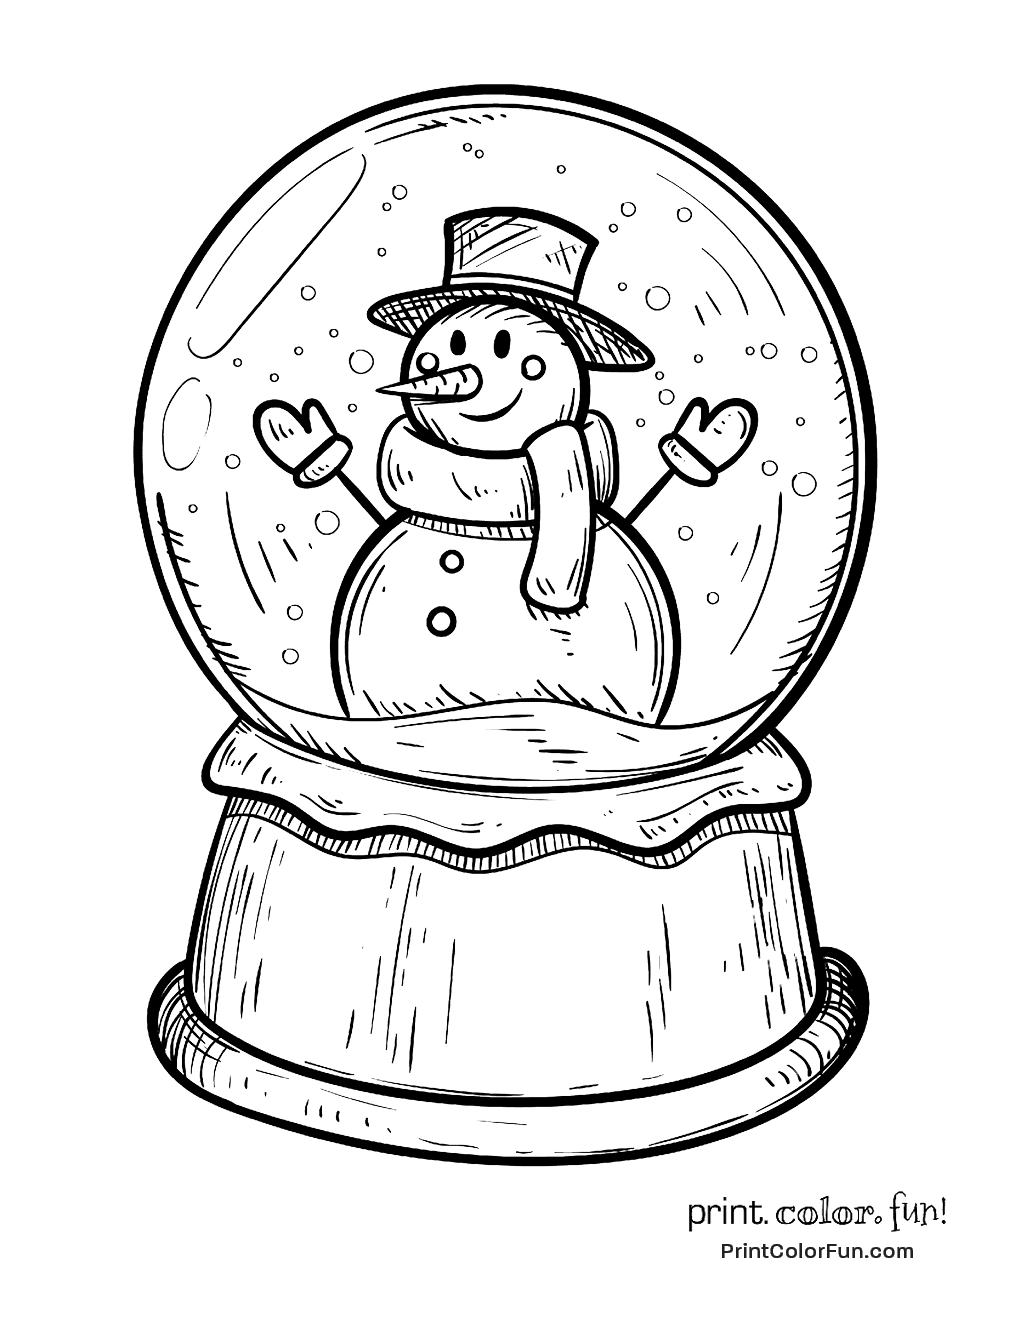 fox snow globe coloring pages - photo#19